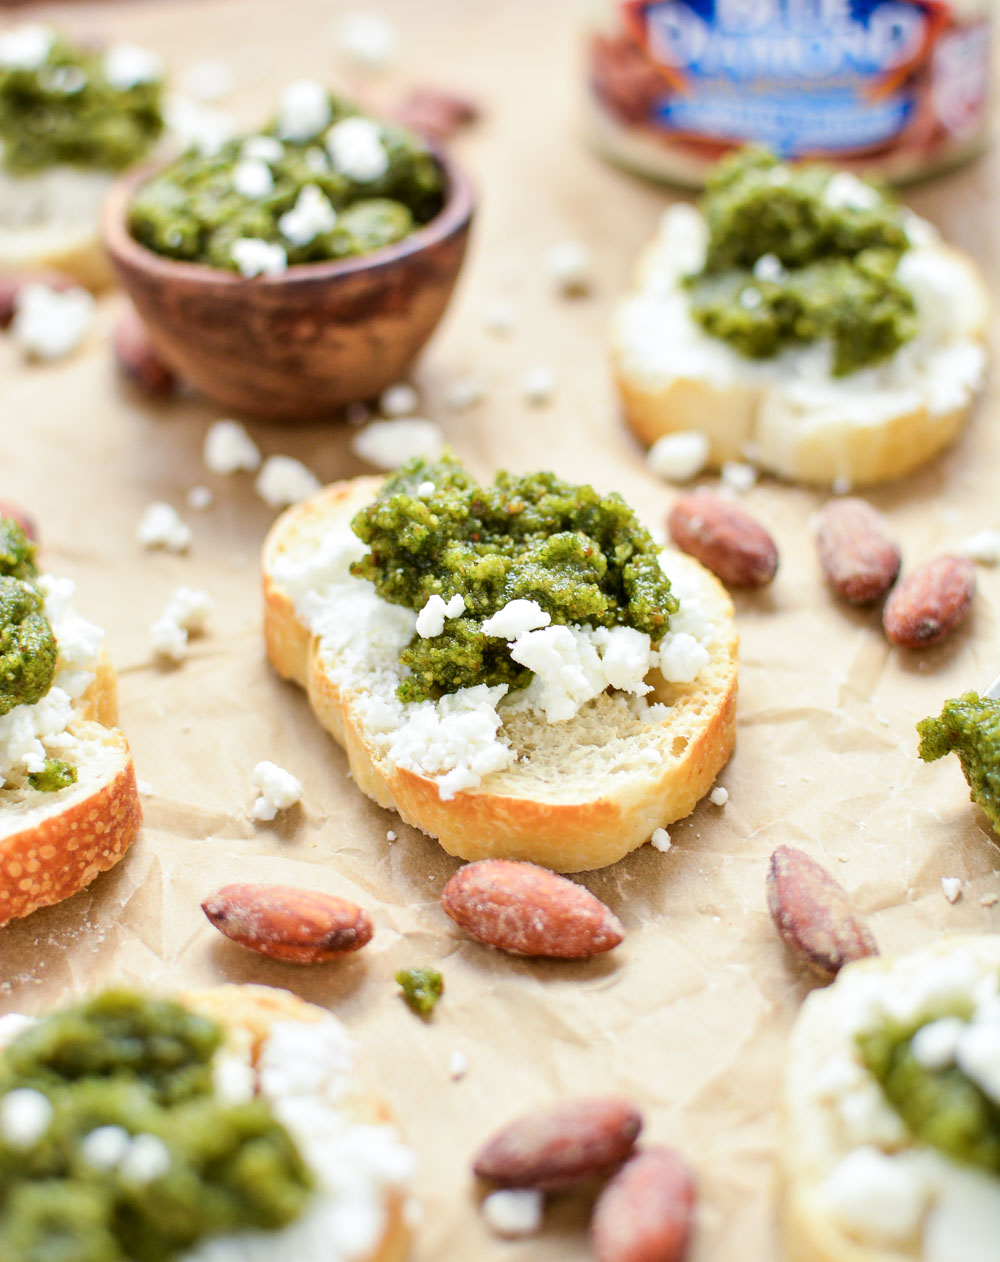 Almond Pesto and Goat Cheese Crostini: the perfect appetizer highlighting fresh herbs and almonds!